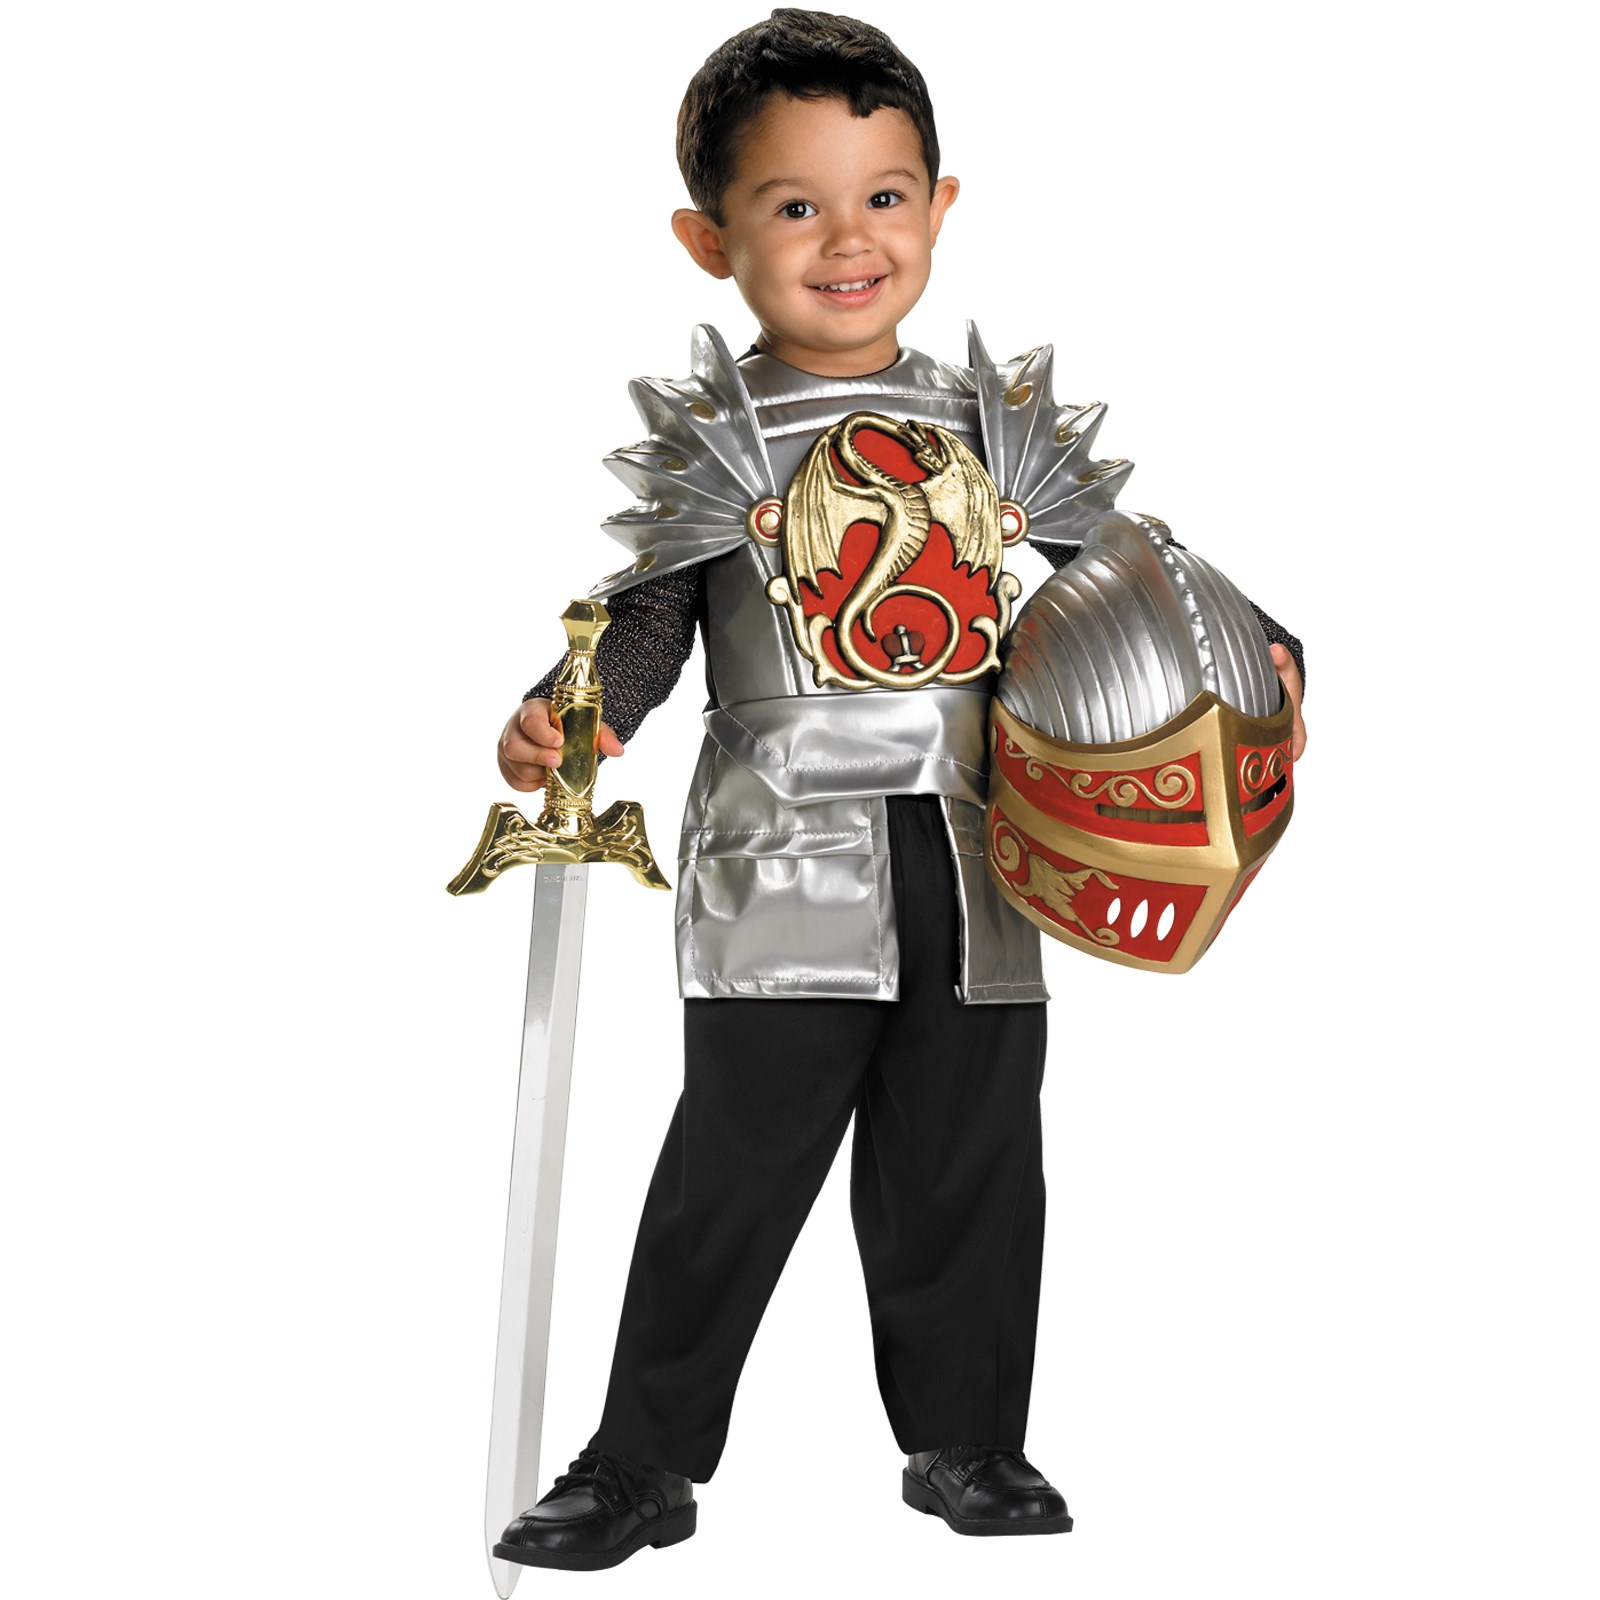 Knight of the Dragon Toddler Costume Toddler (2T)